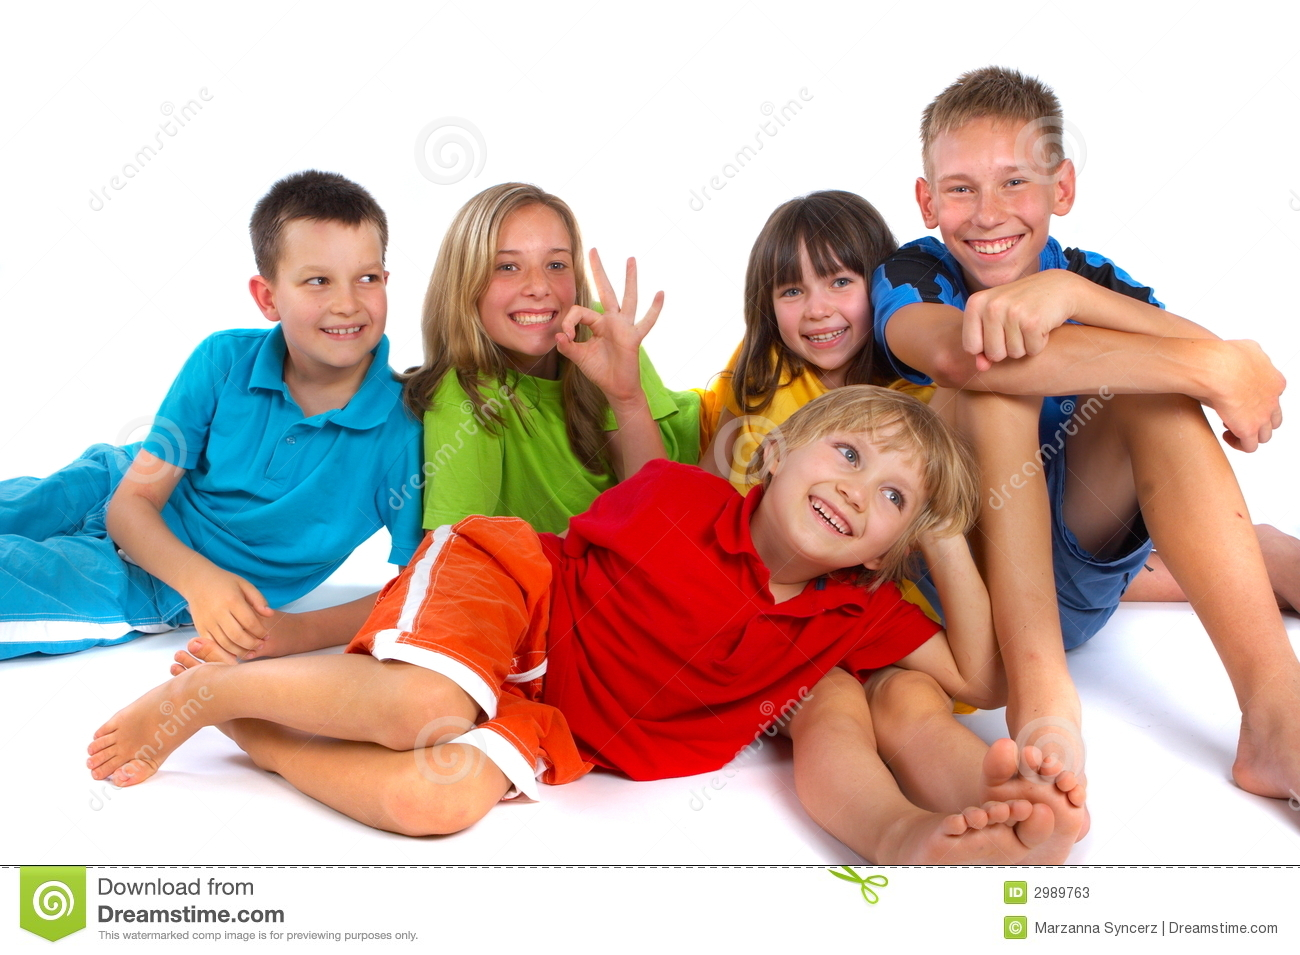 group of children having fun while posing together in a studio.